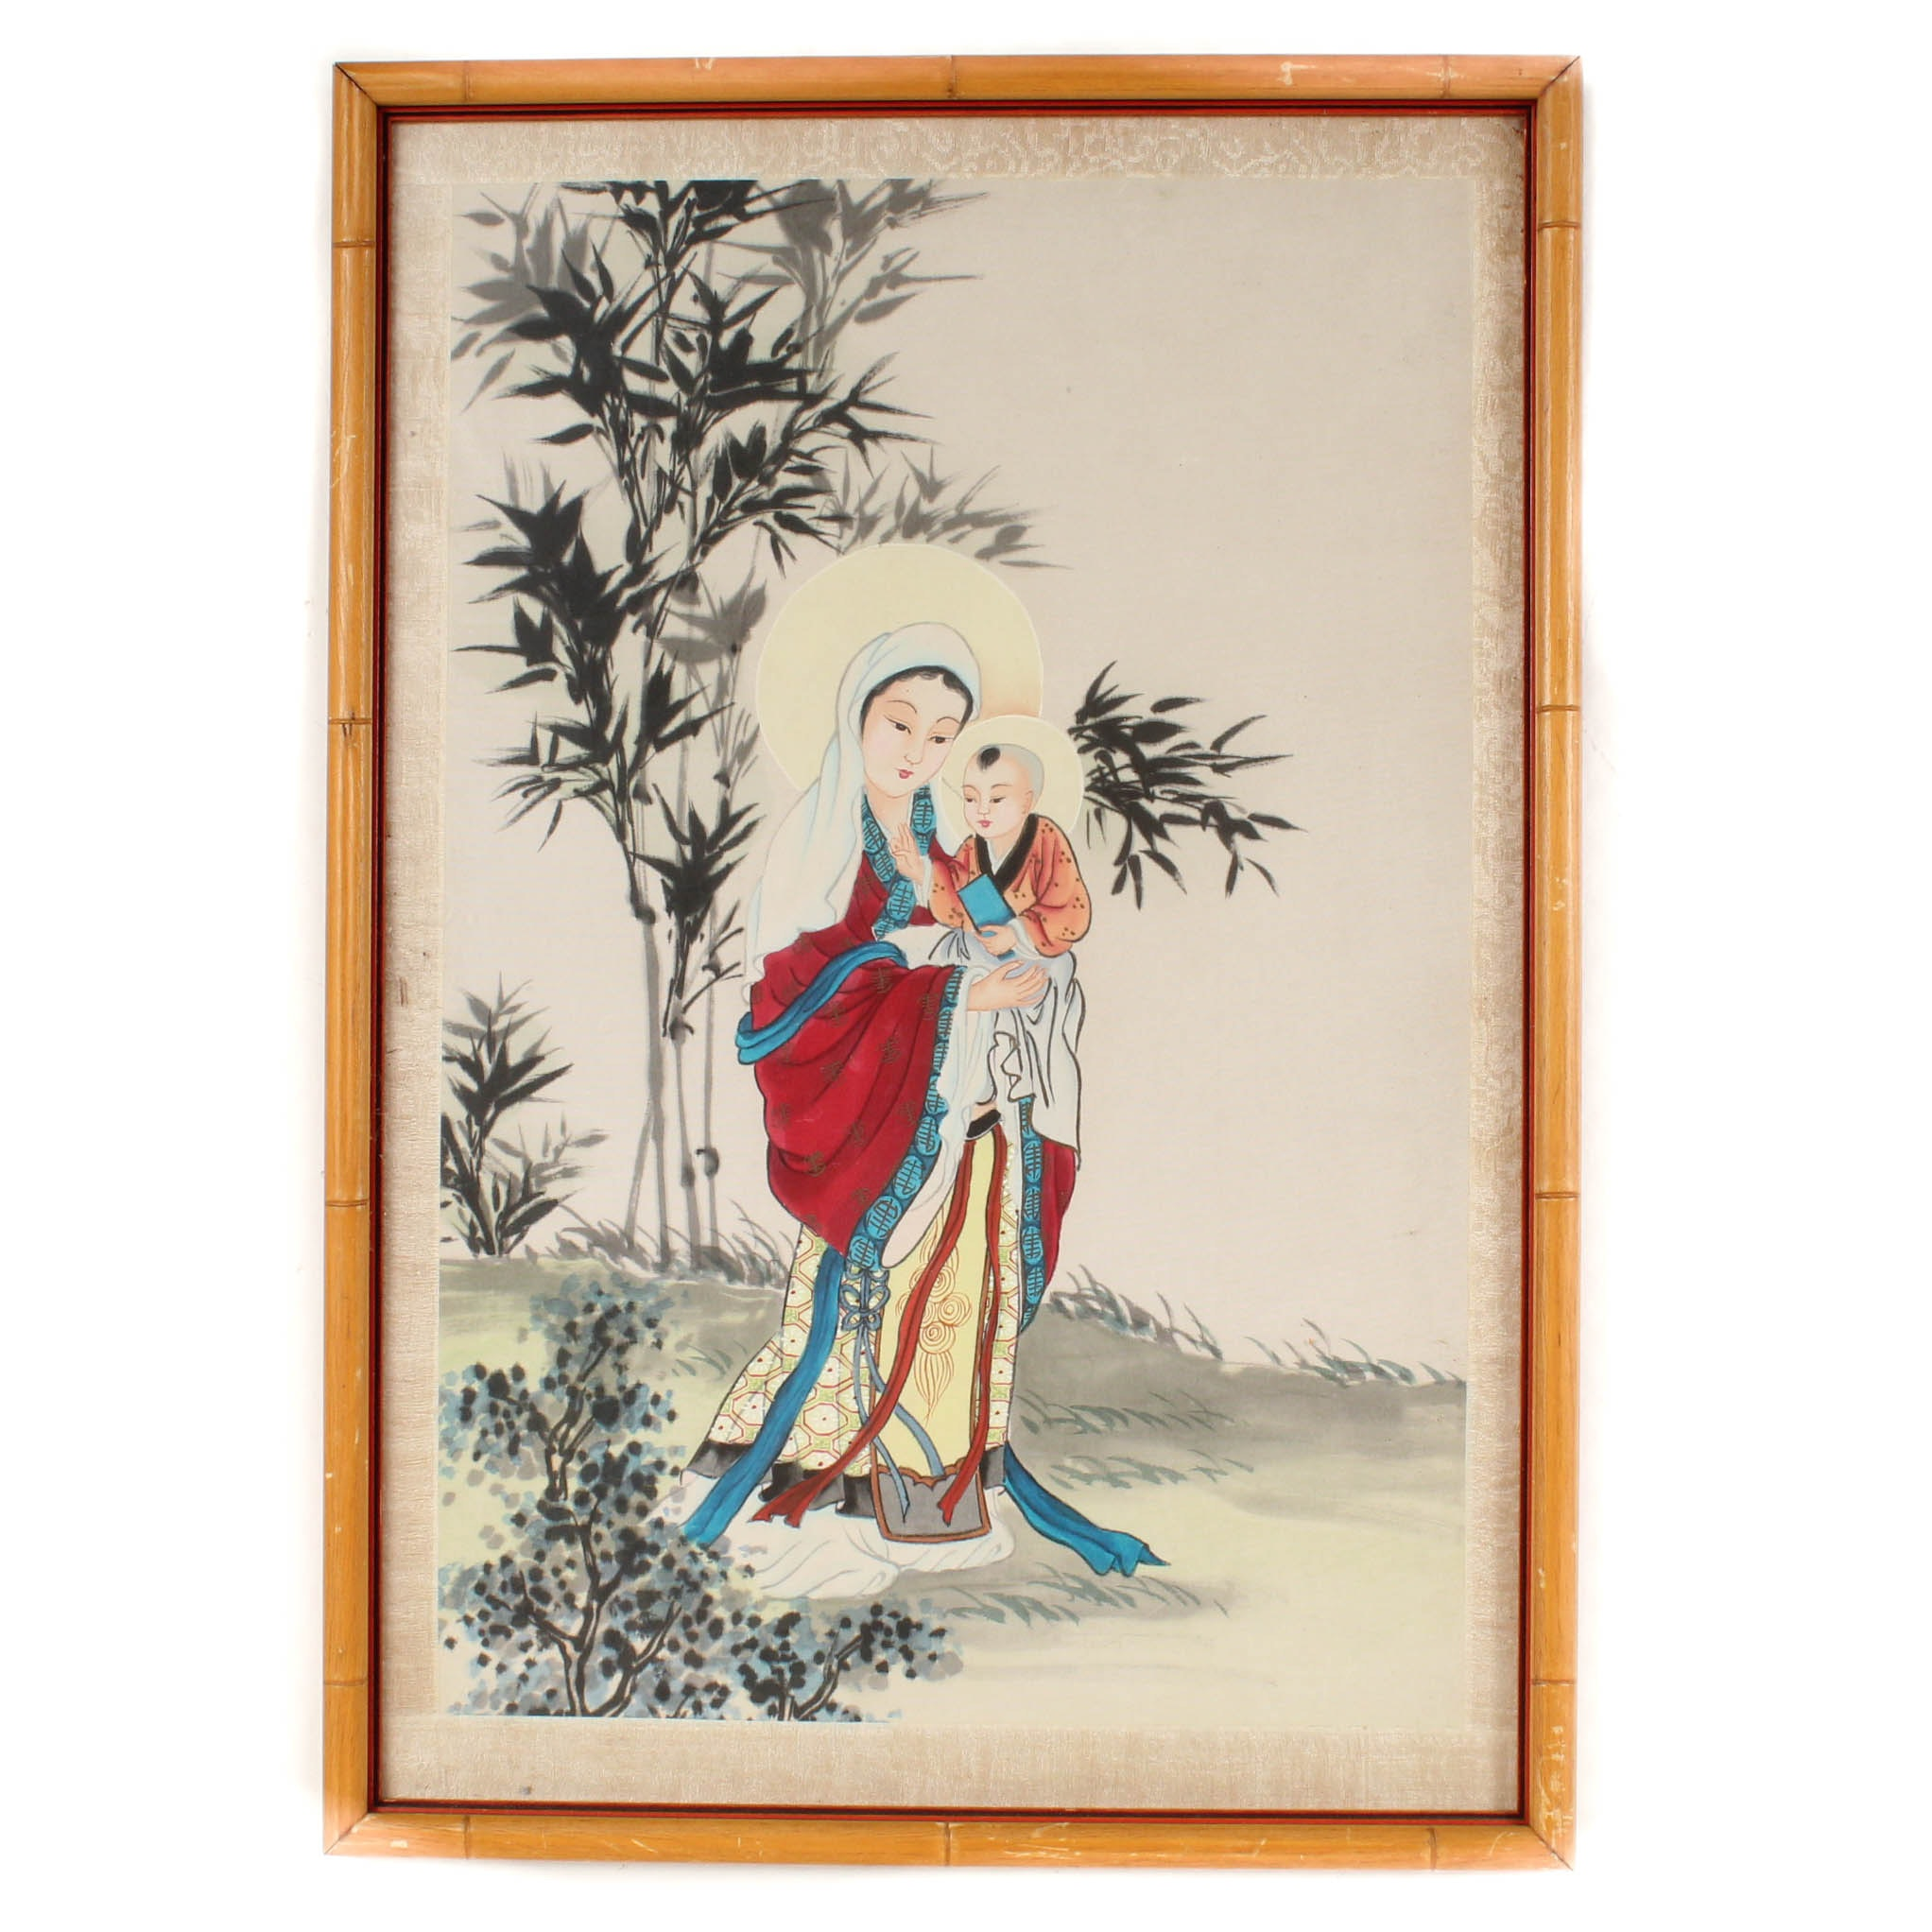 Chinese Watercolor Depicting The Virgin Mary and Jesus